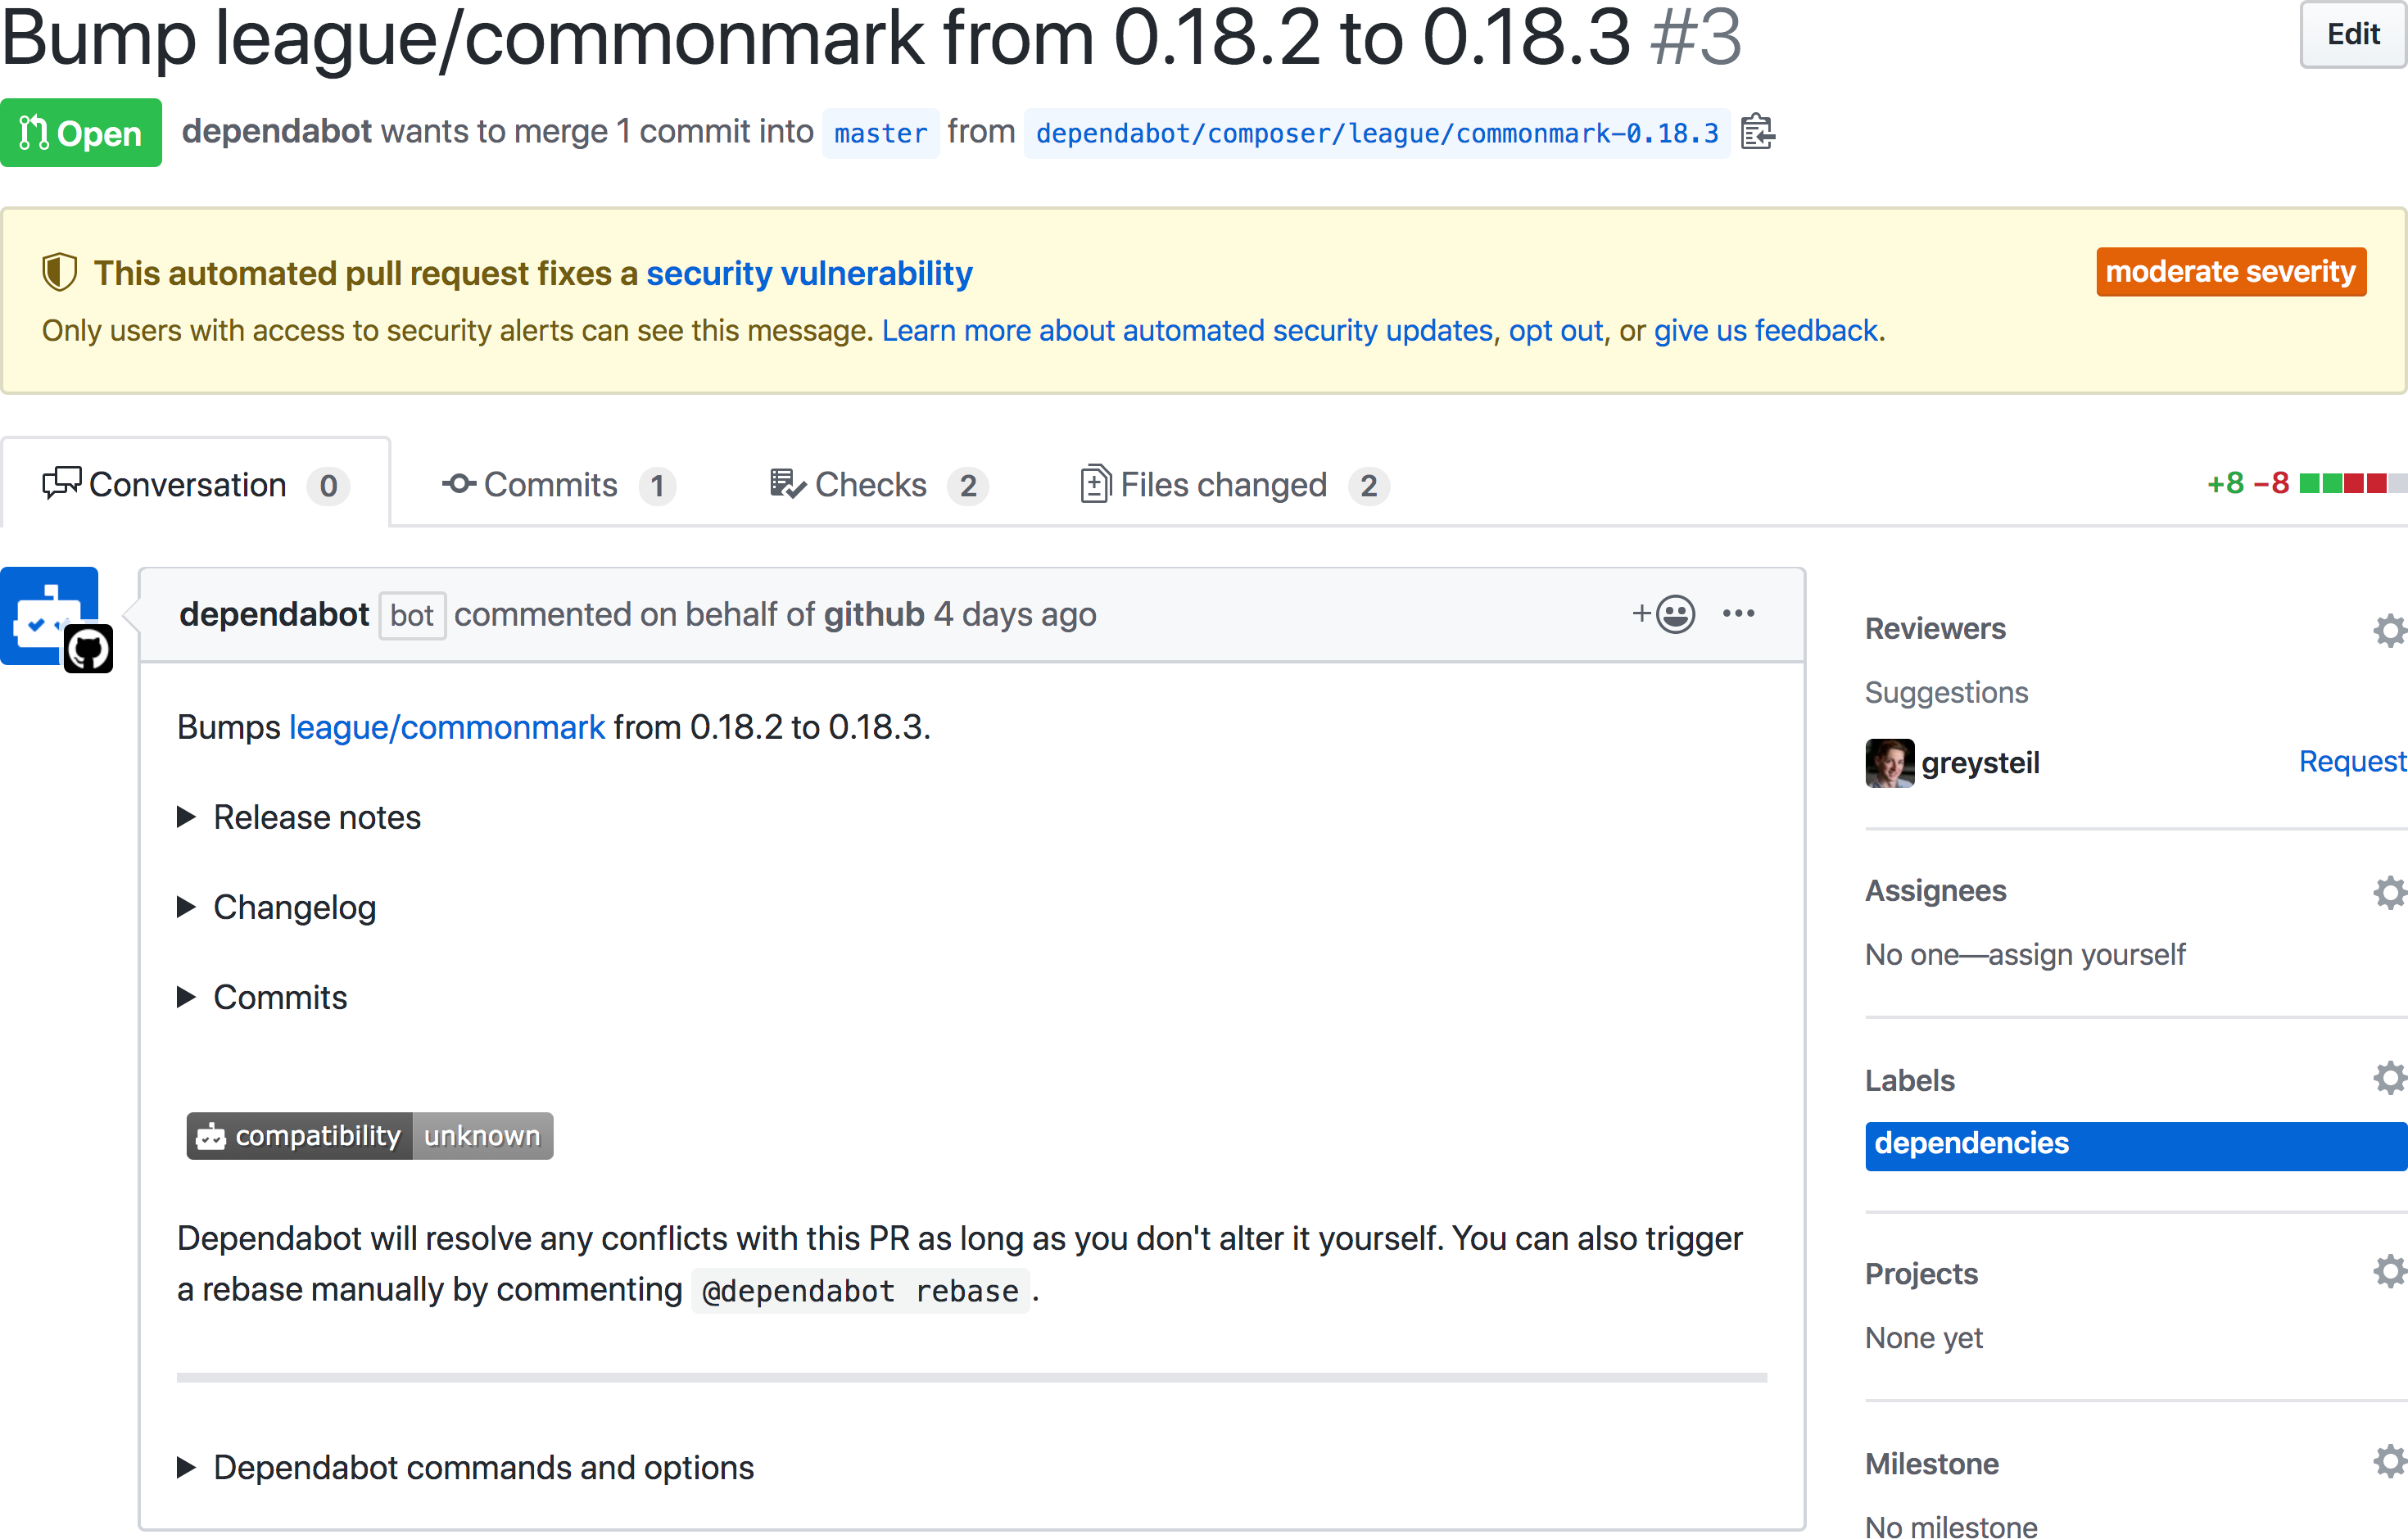 Automated security updates are found in pull requests, automatically opened by dependabot.